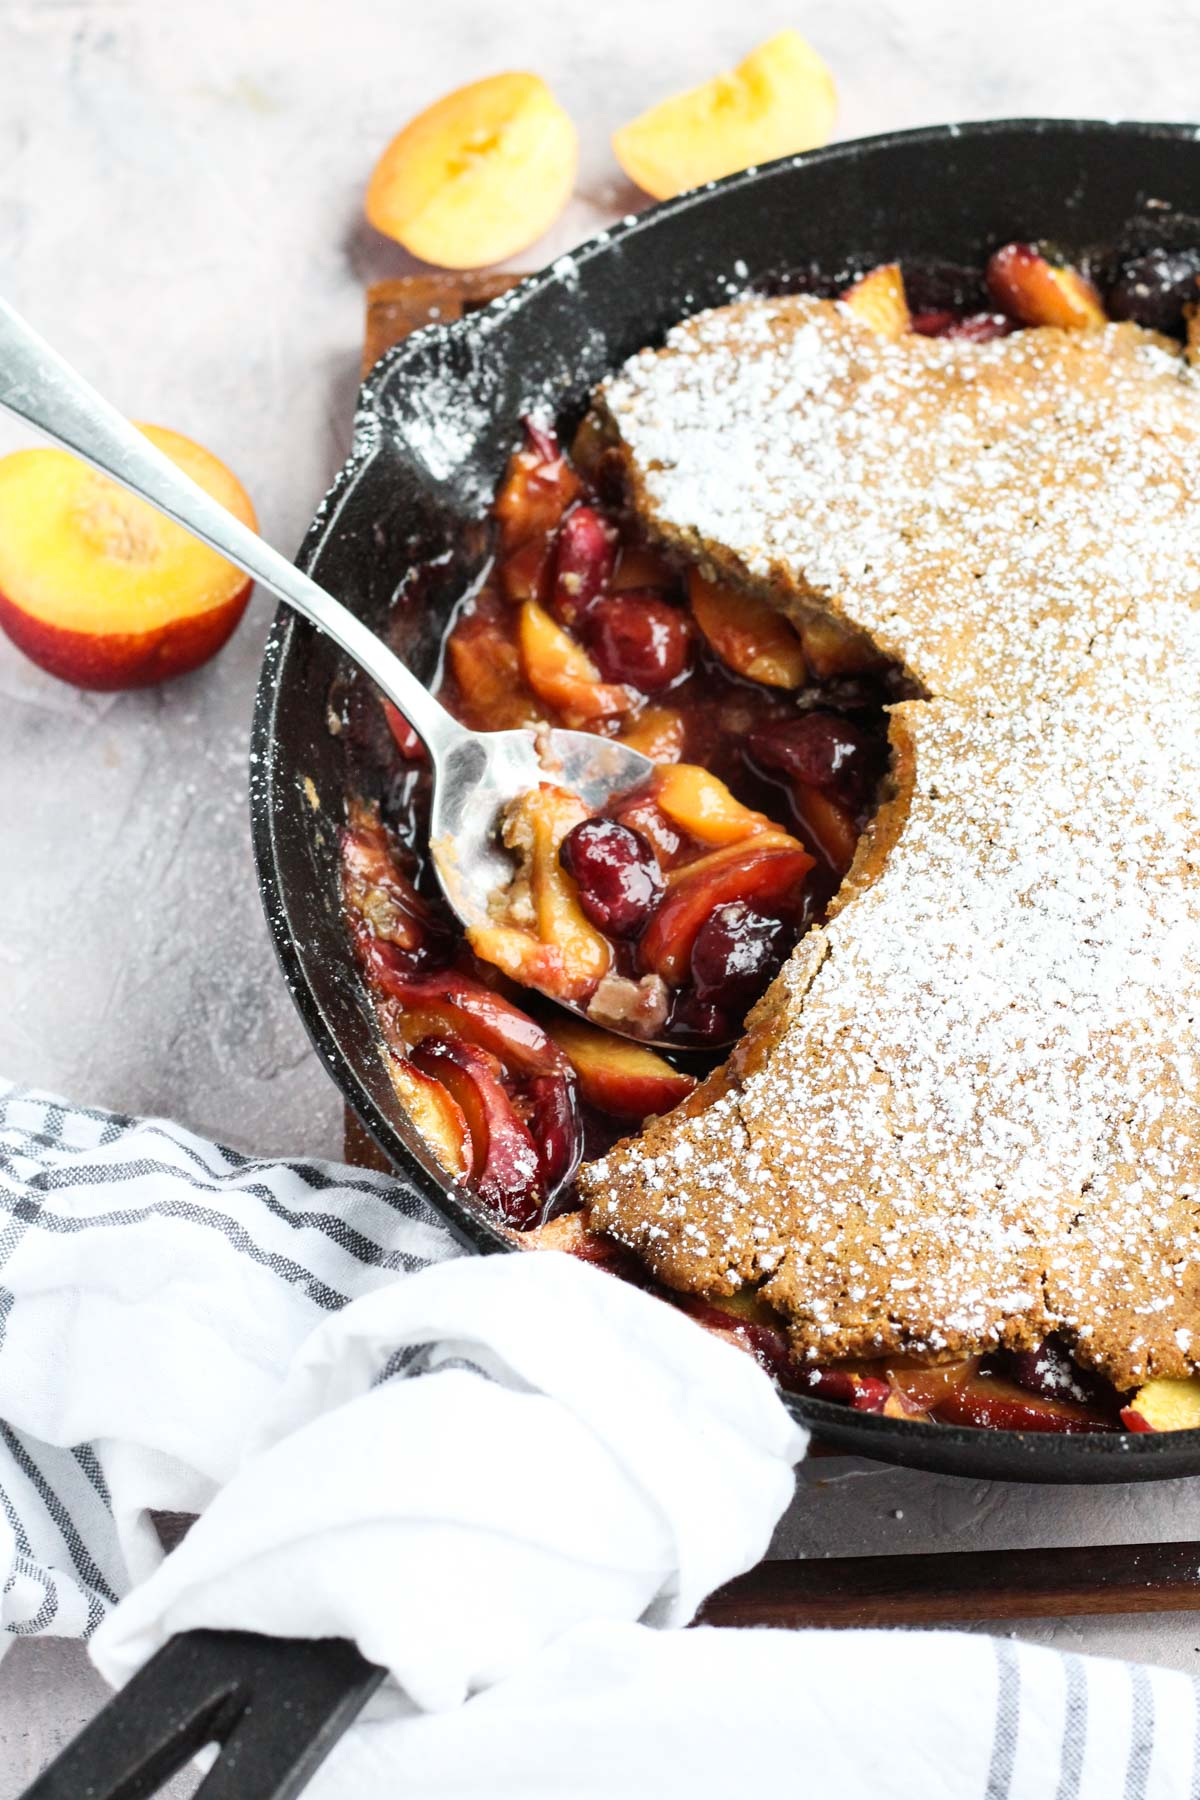 Side angle of cobbler with a spoon scooping out fruit.